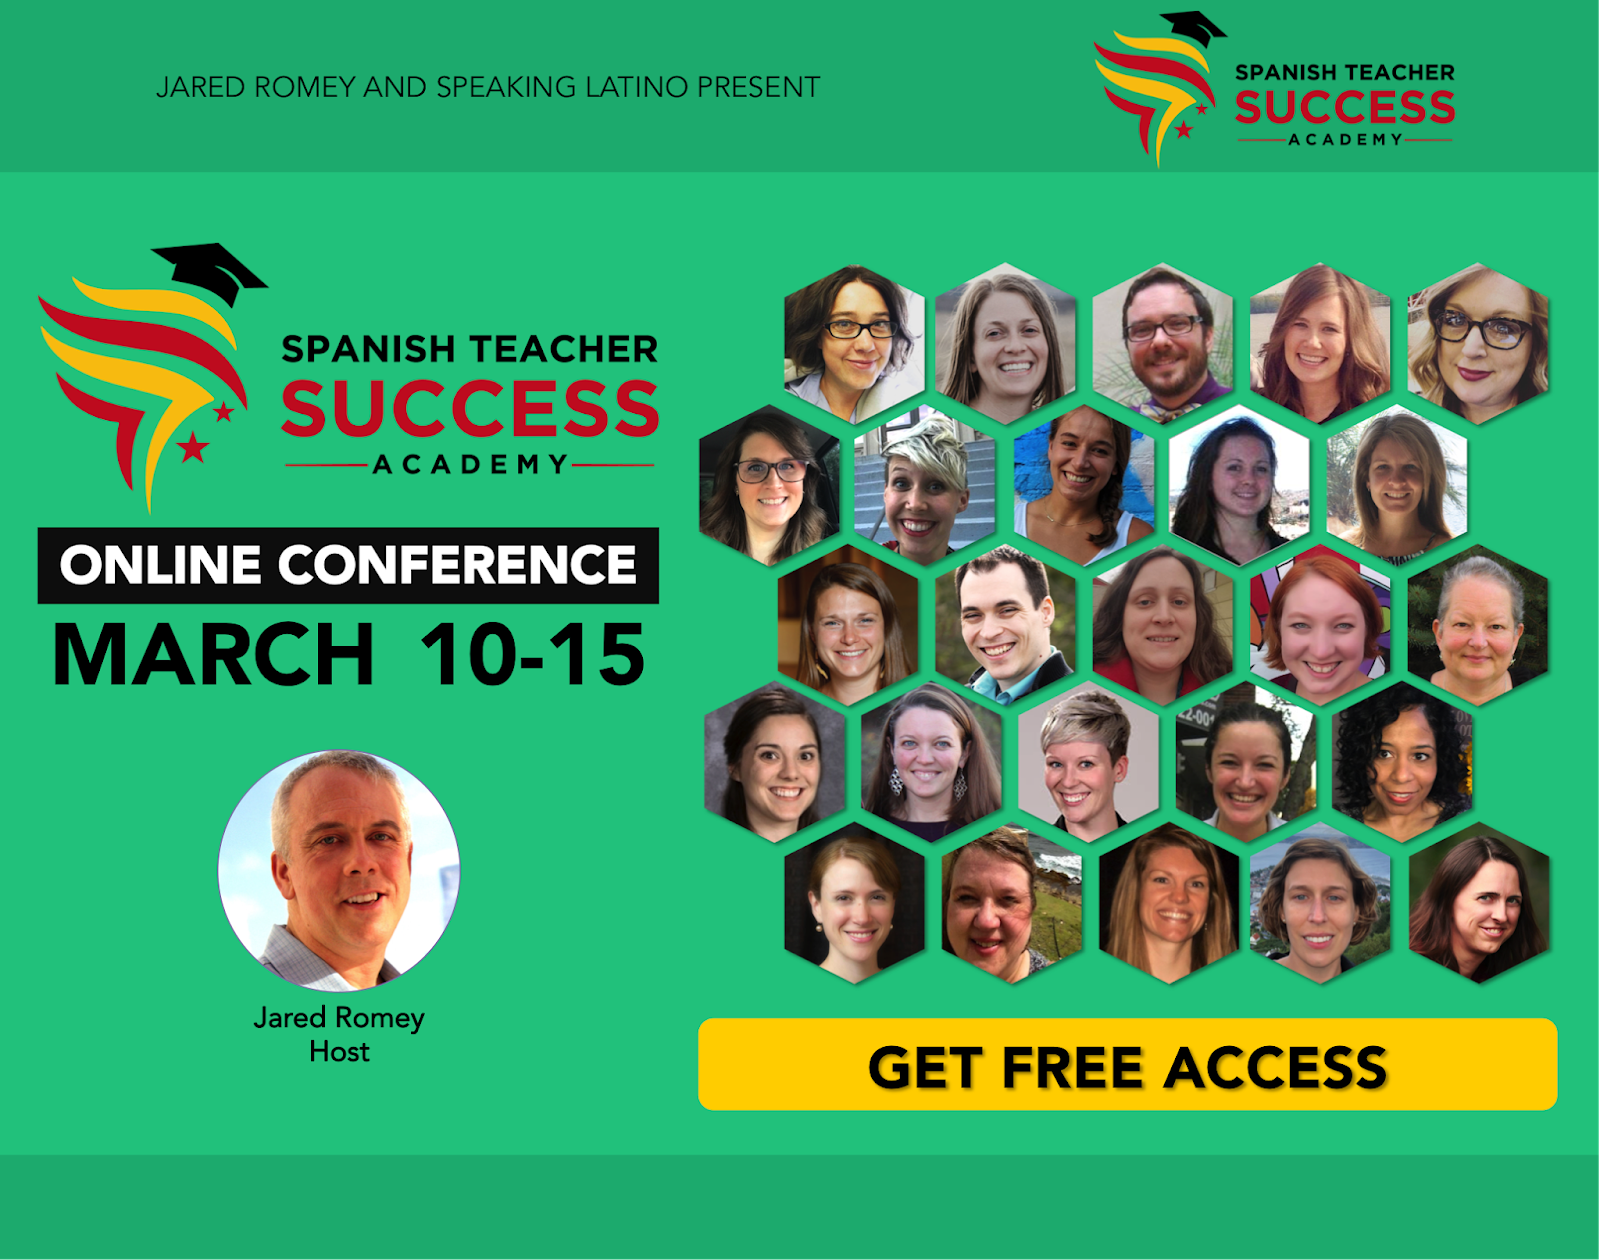 Spanish Teacher Success Academy - FREE online professional development for Spanish teachers - shared by Mis Clases Locas